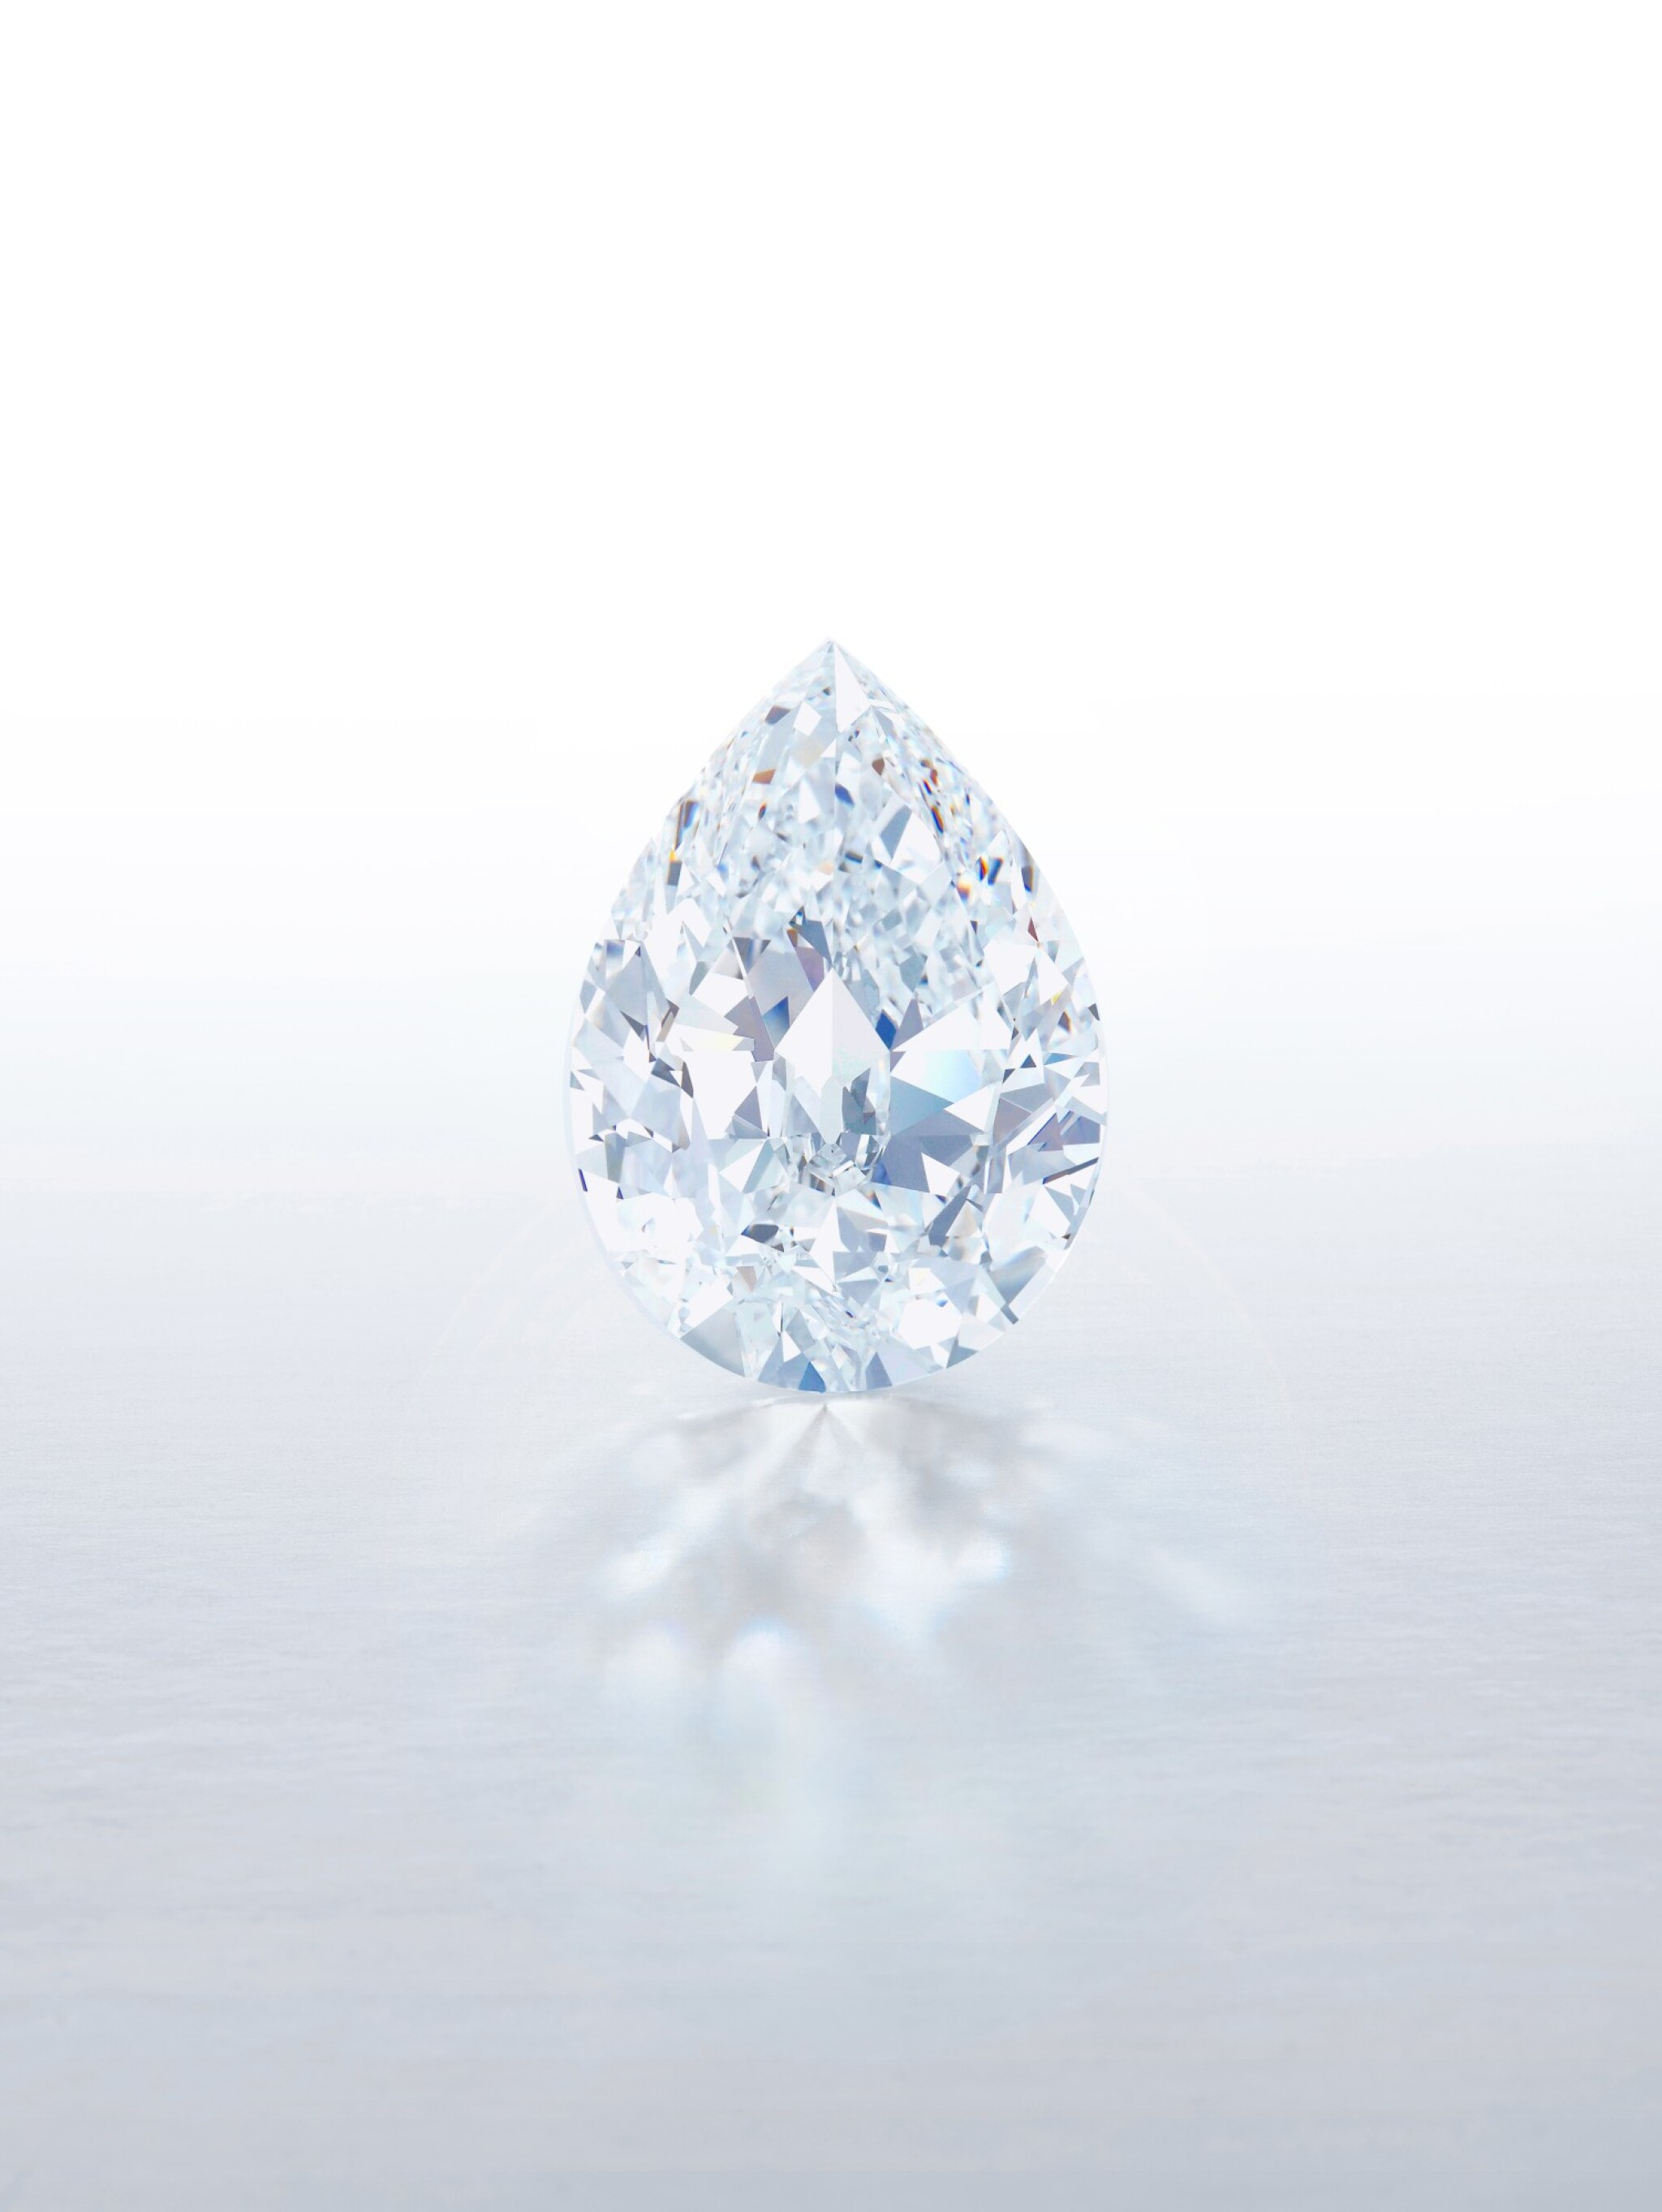 View full screen - View 1 of Lot 1. An Exceptional and Magnificent Unmounted Diamond | 無與倫比並極其重要 101.38克拉 梨形 D色 完美無瑕 Type IIa 巨鑽.